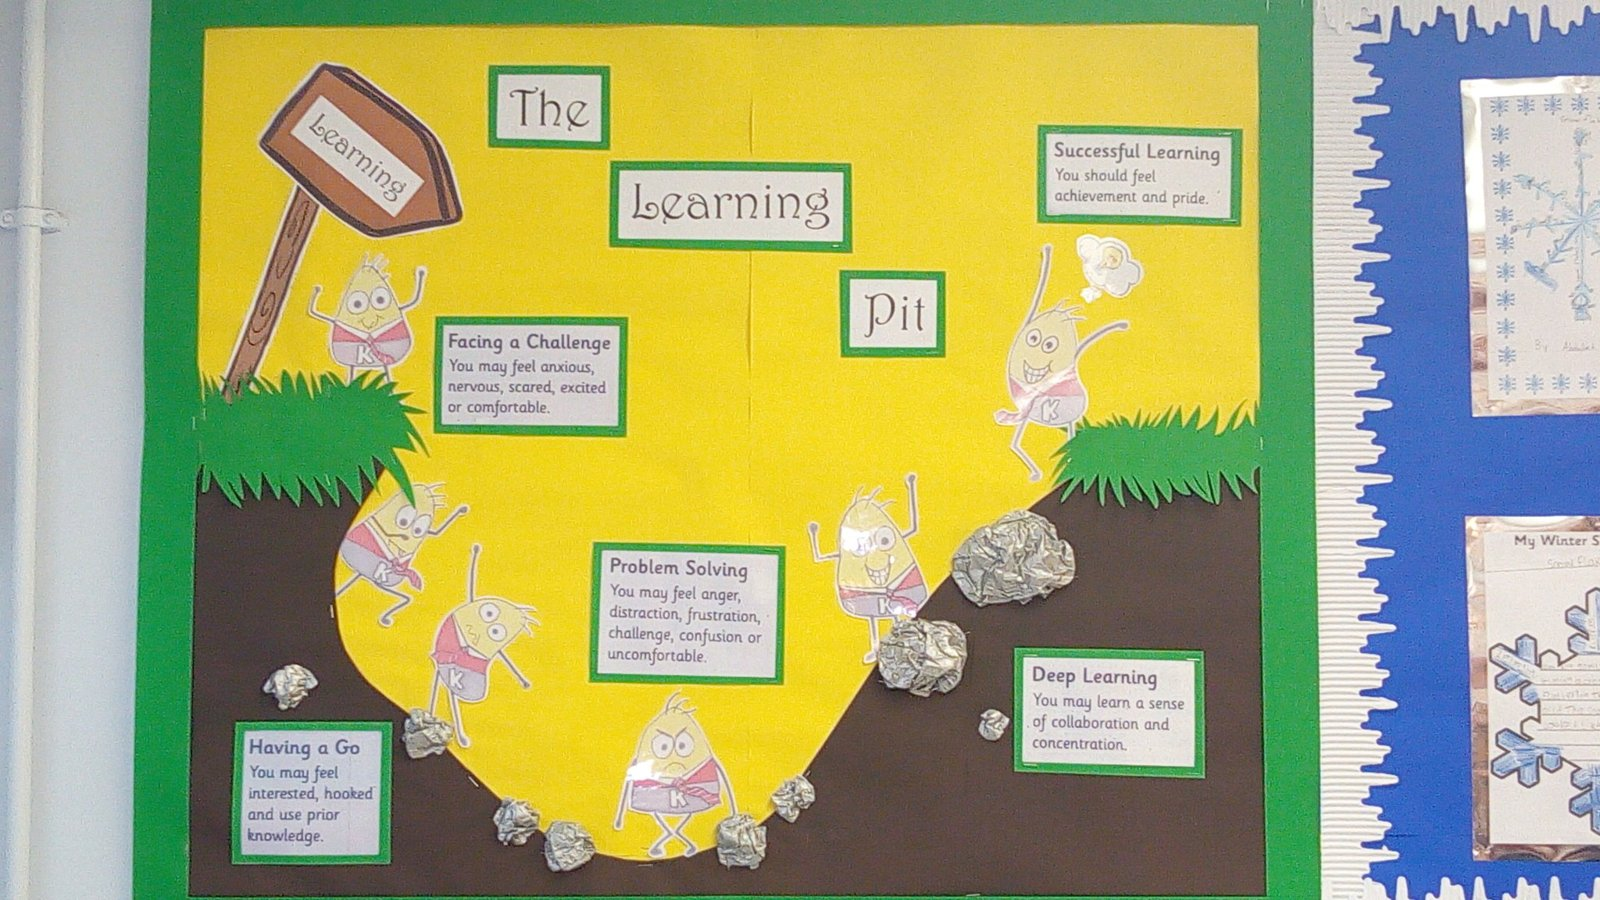 Learning Pit Photos Kennington Primary School